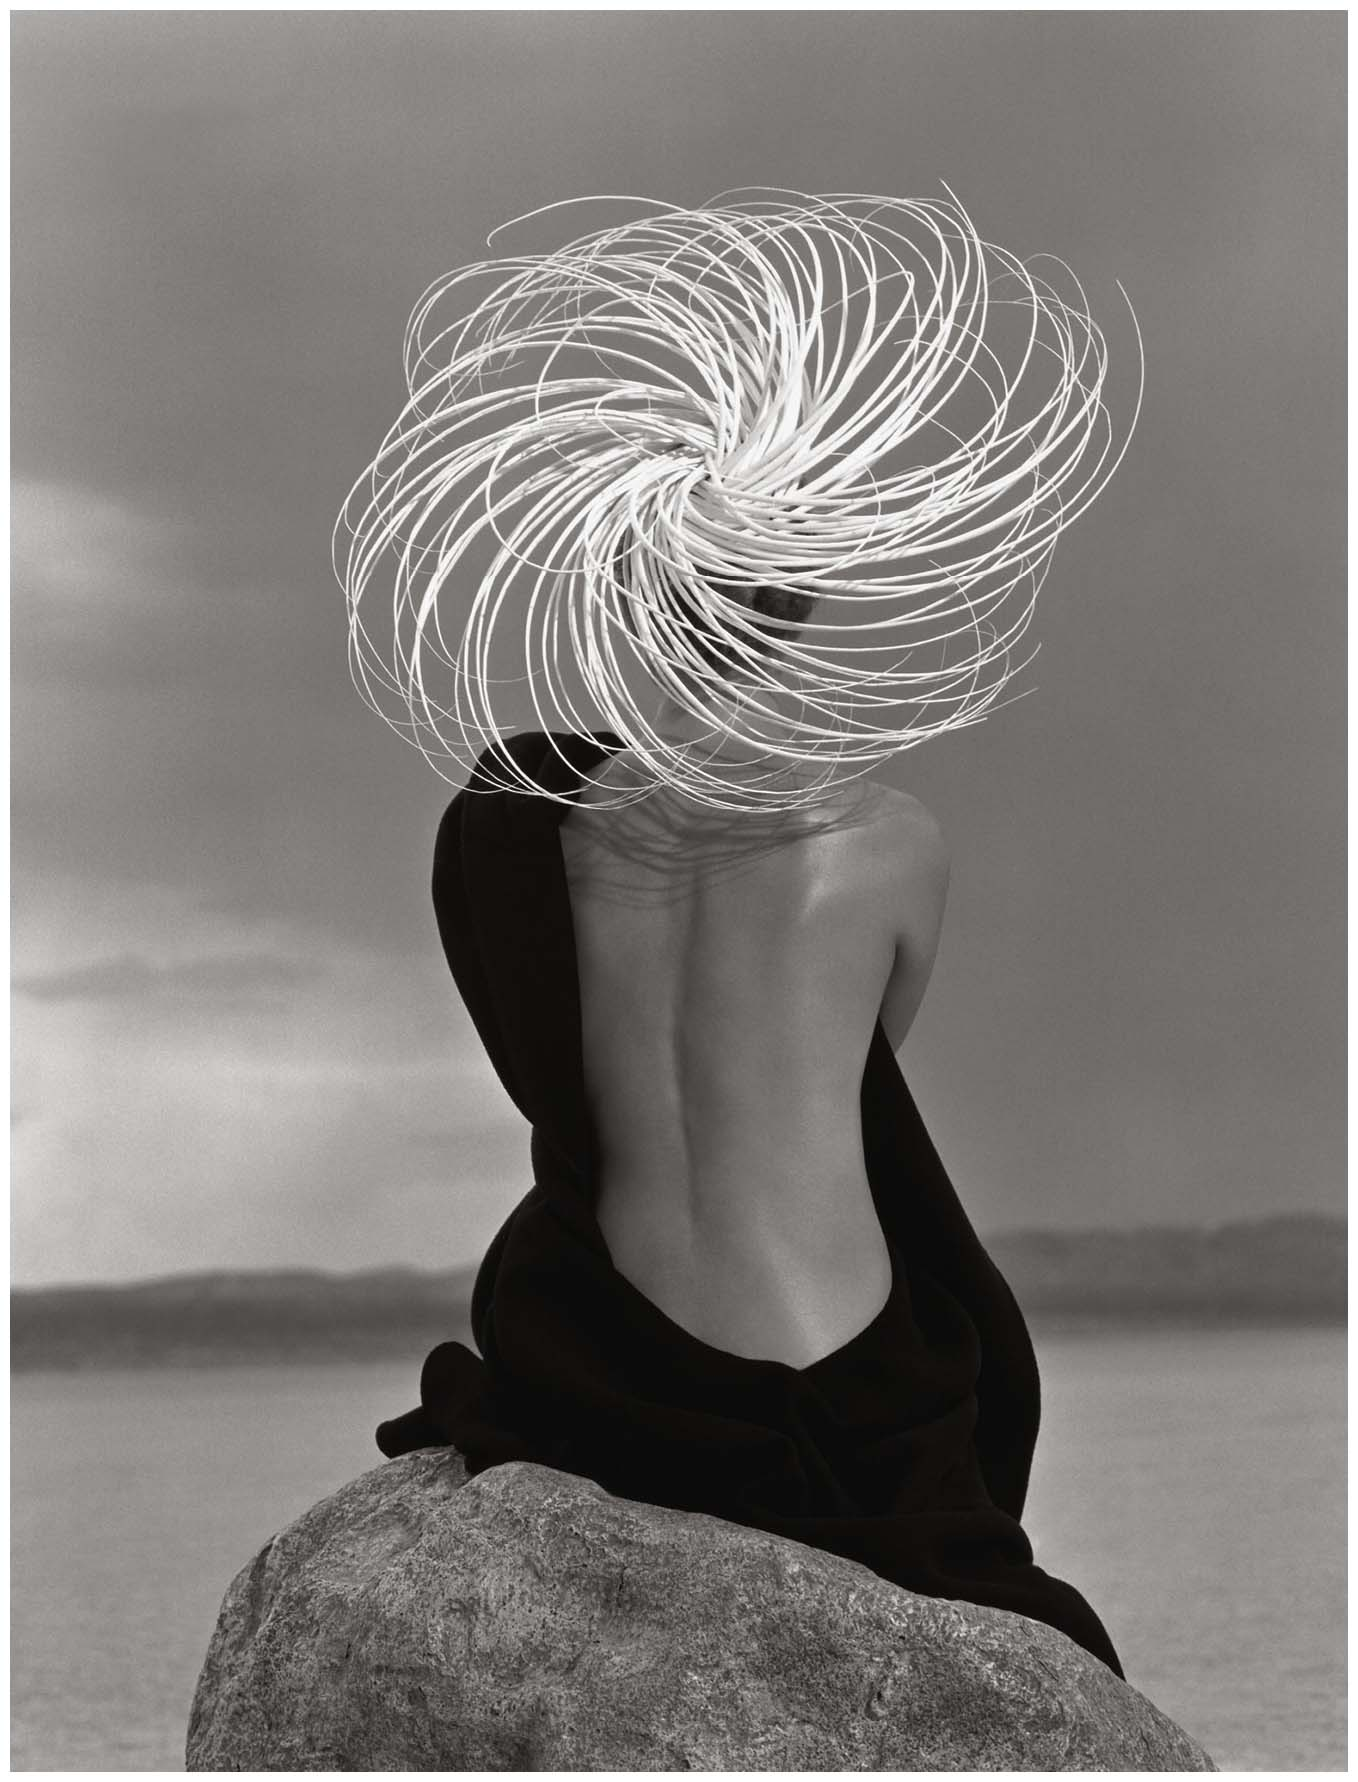 Now and Zen 1 by Herb Ritts